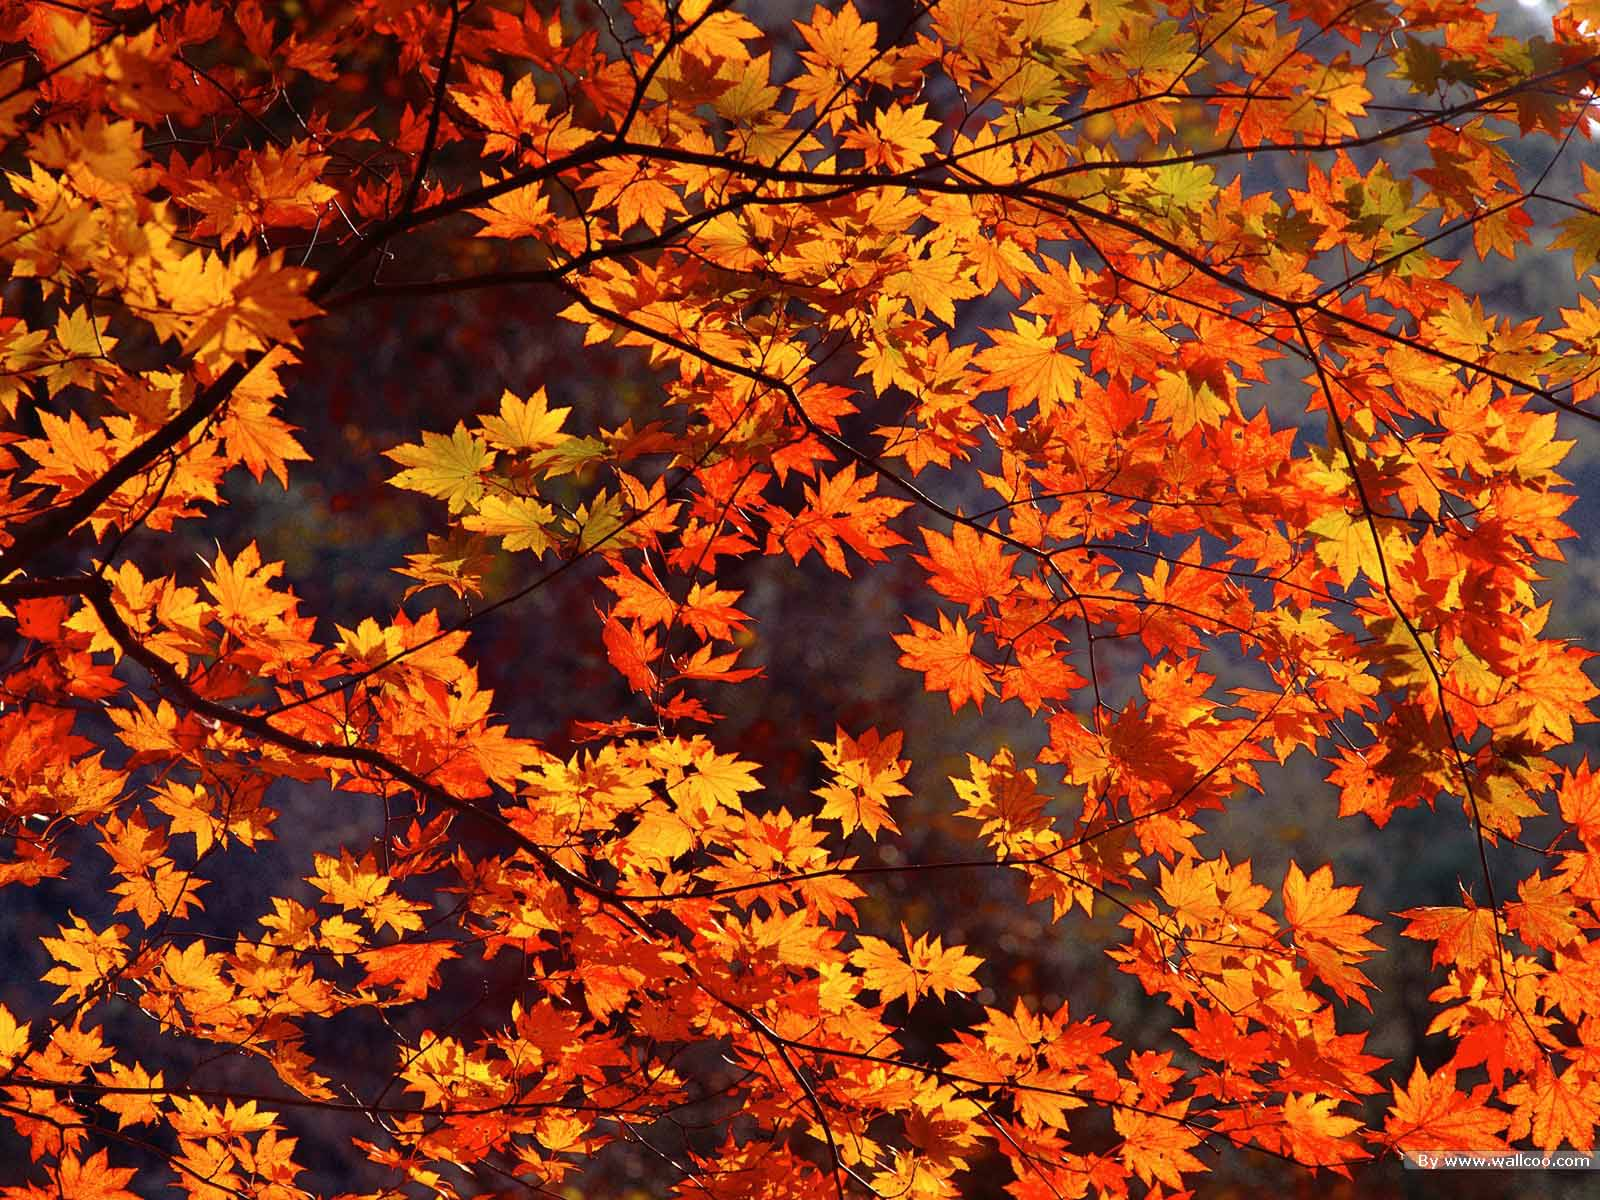 Cute Psychedelic Phone Wallpaper Download Free Autumn Wallpaper Gallery